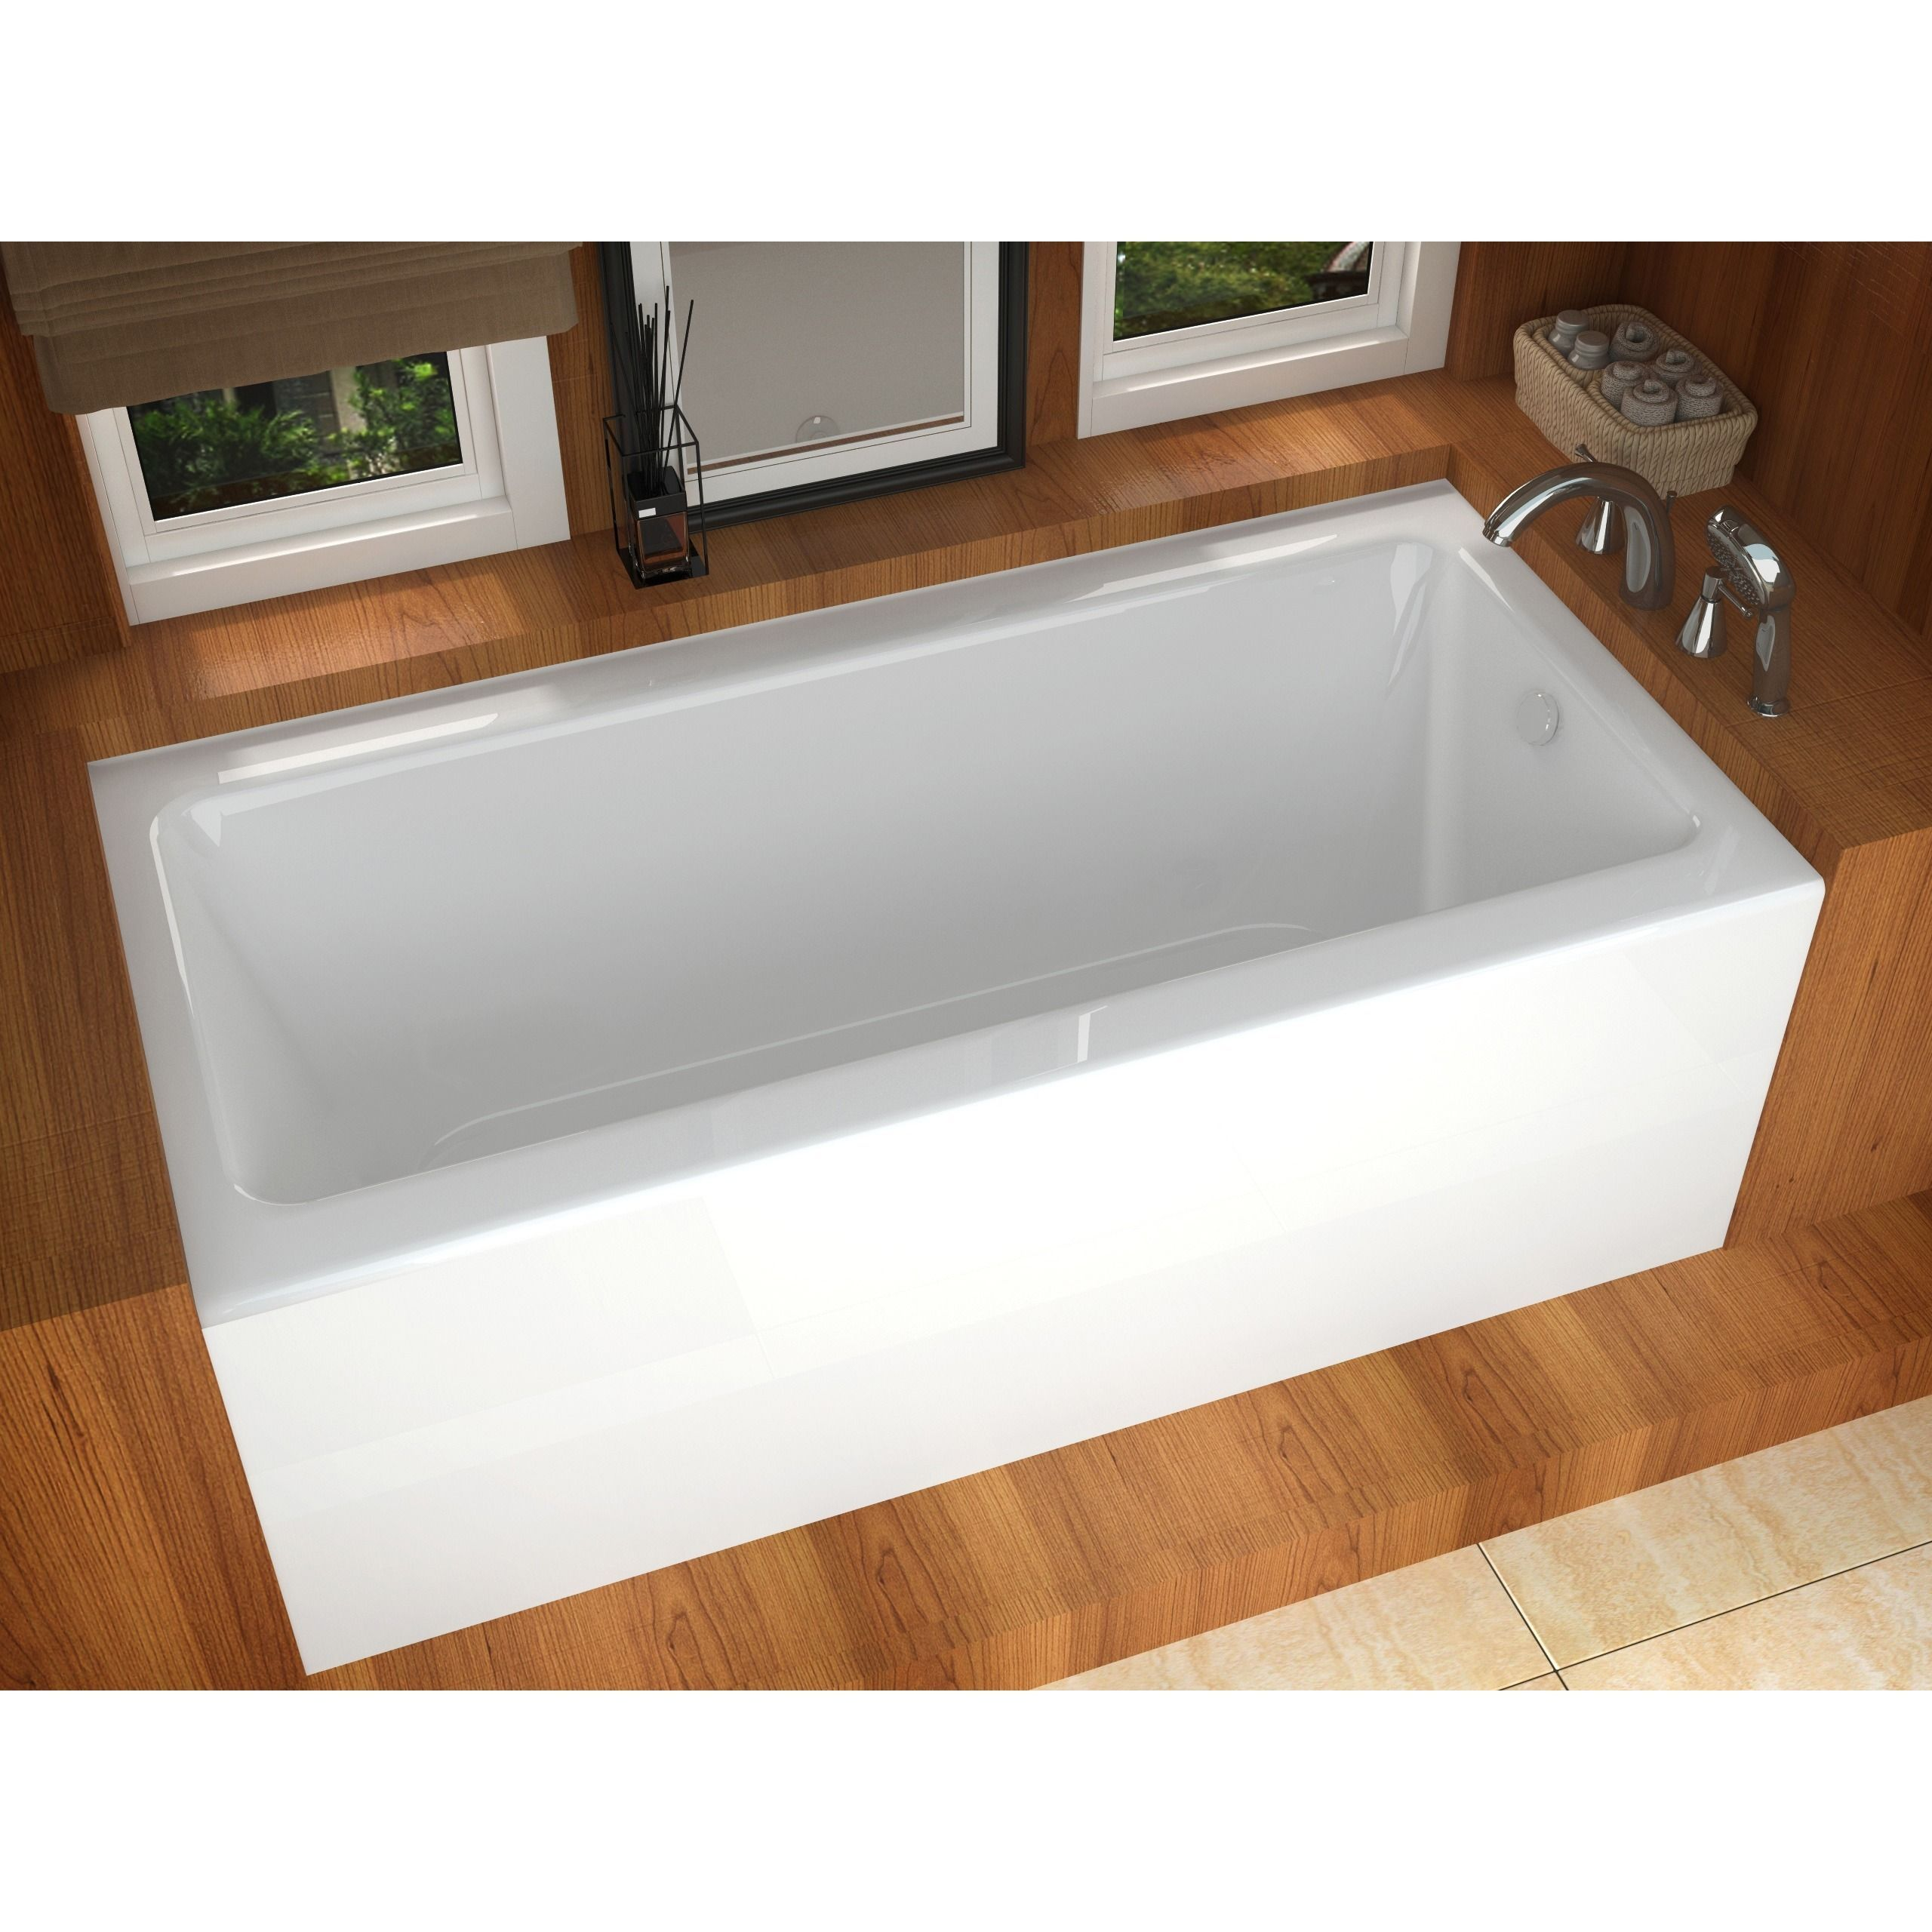 Atlantis Whirlpools Soho 32 x 60 Front Skirted Whirlpool Tub with ...